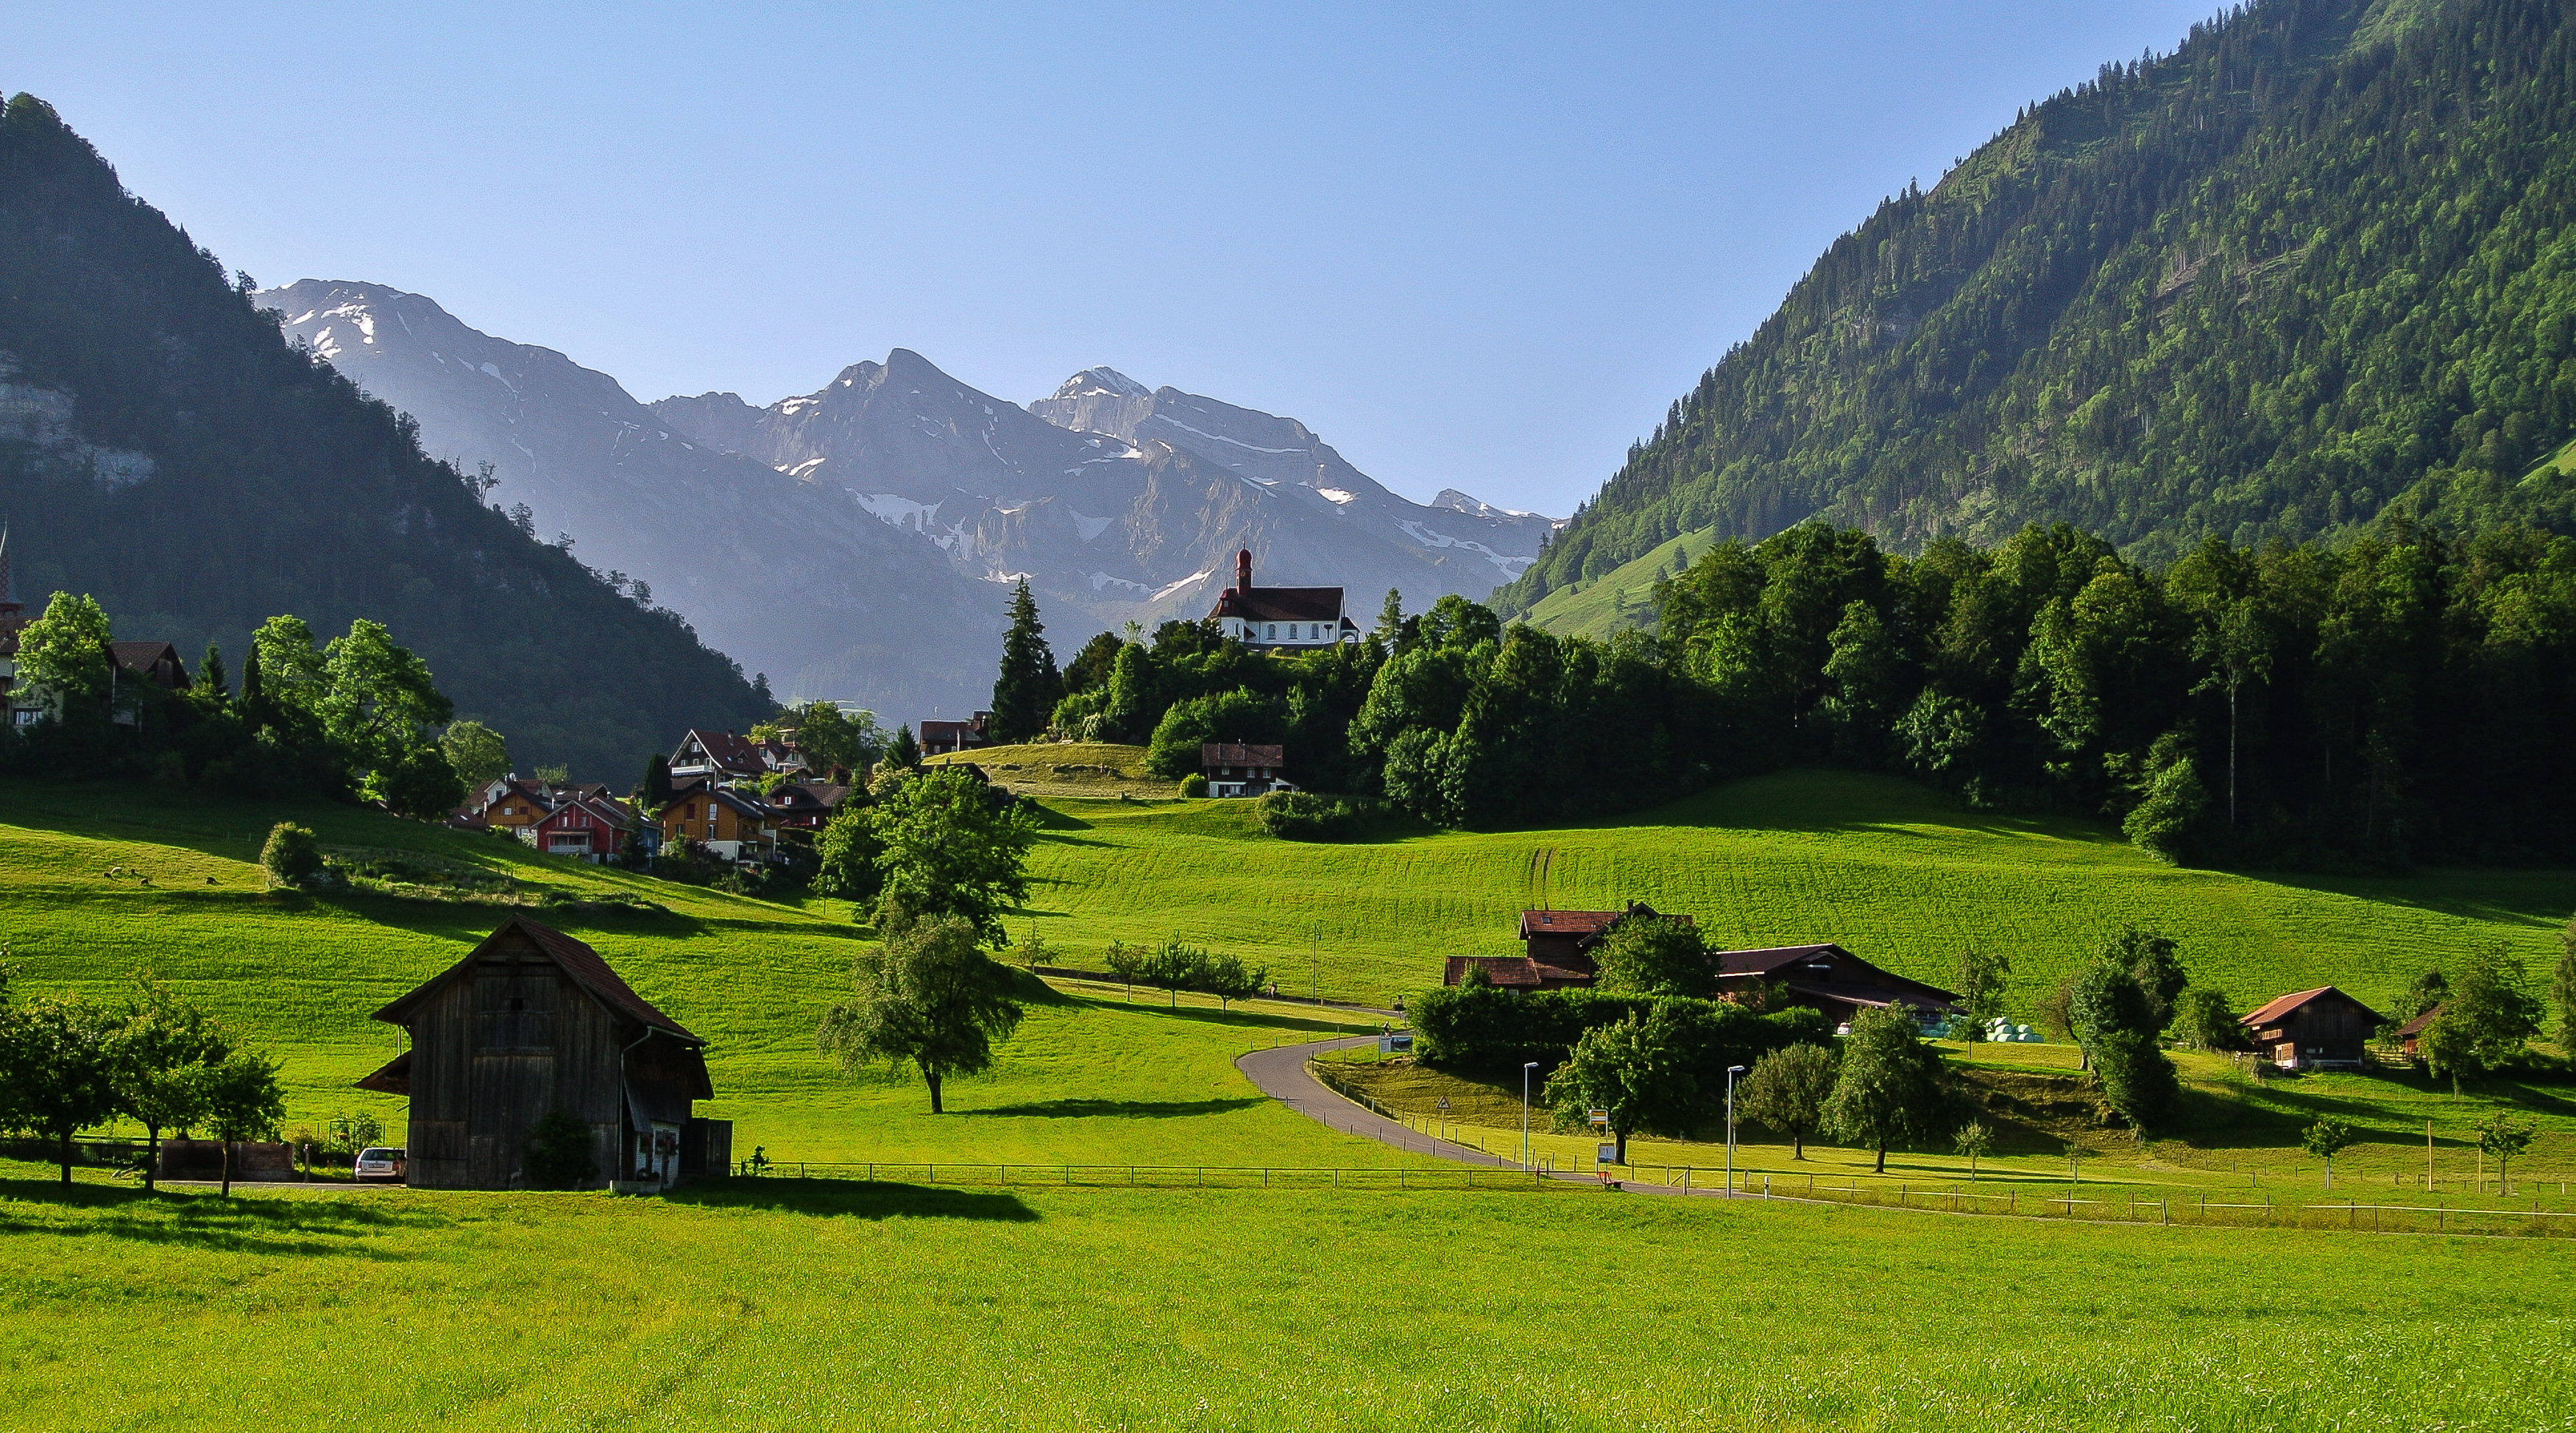 168 switzerland hd wallpapers | background images - wallpaper abyss